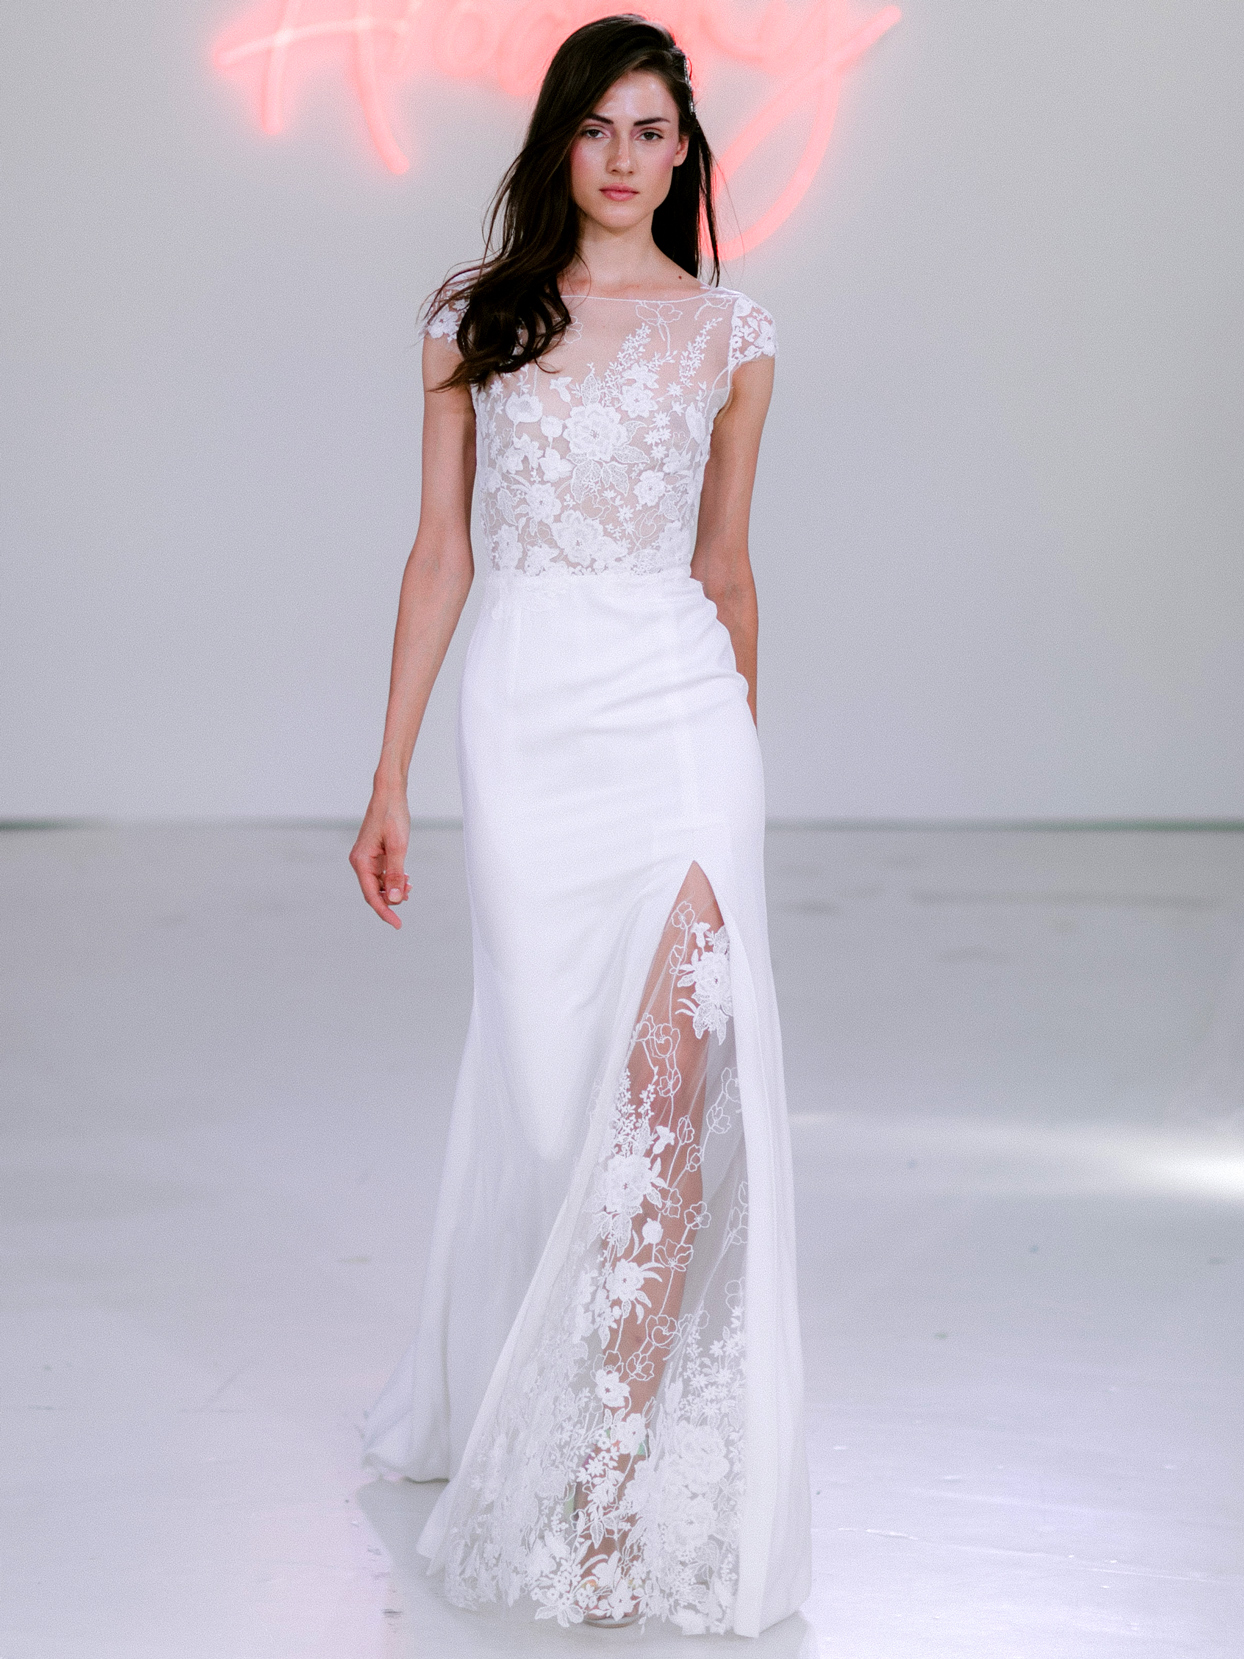 Rime Arodaky X The Mews Bridal sheer lace illusion crew neck cap sleeve wedding dress fall 2020